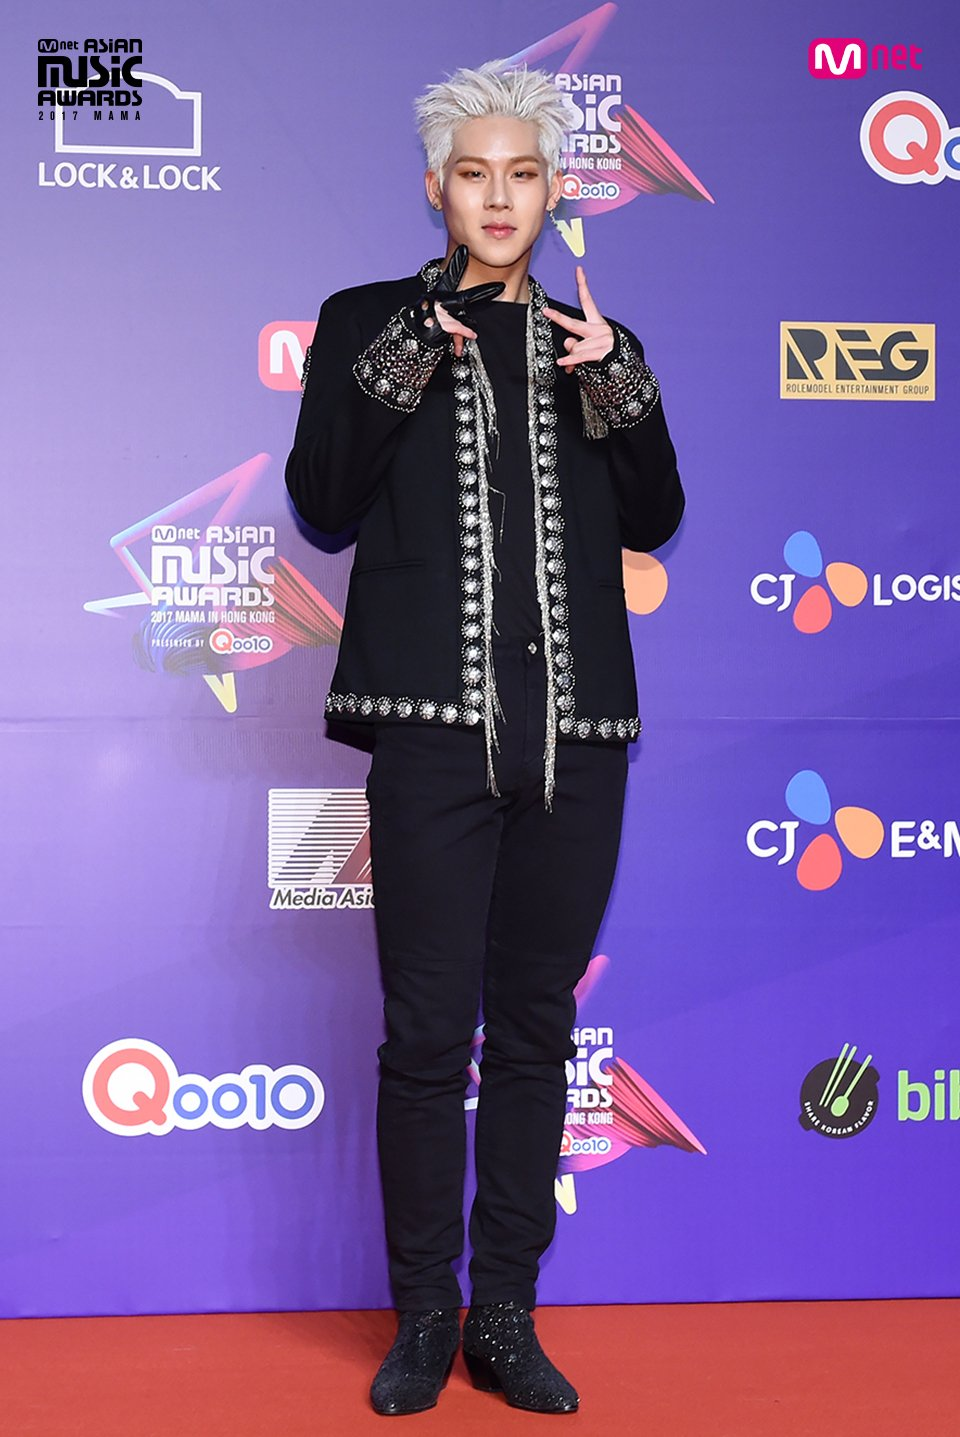 [#2017MAMA in Hong Kong] #JOOHEON #JEONGSEWOON #SOYOU #HYUKOH Here go the LIVE photos of Red Carpet! #MAMARedCarpet https://t.co/Rfi9D2QZmT